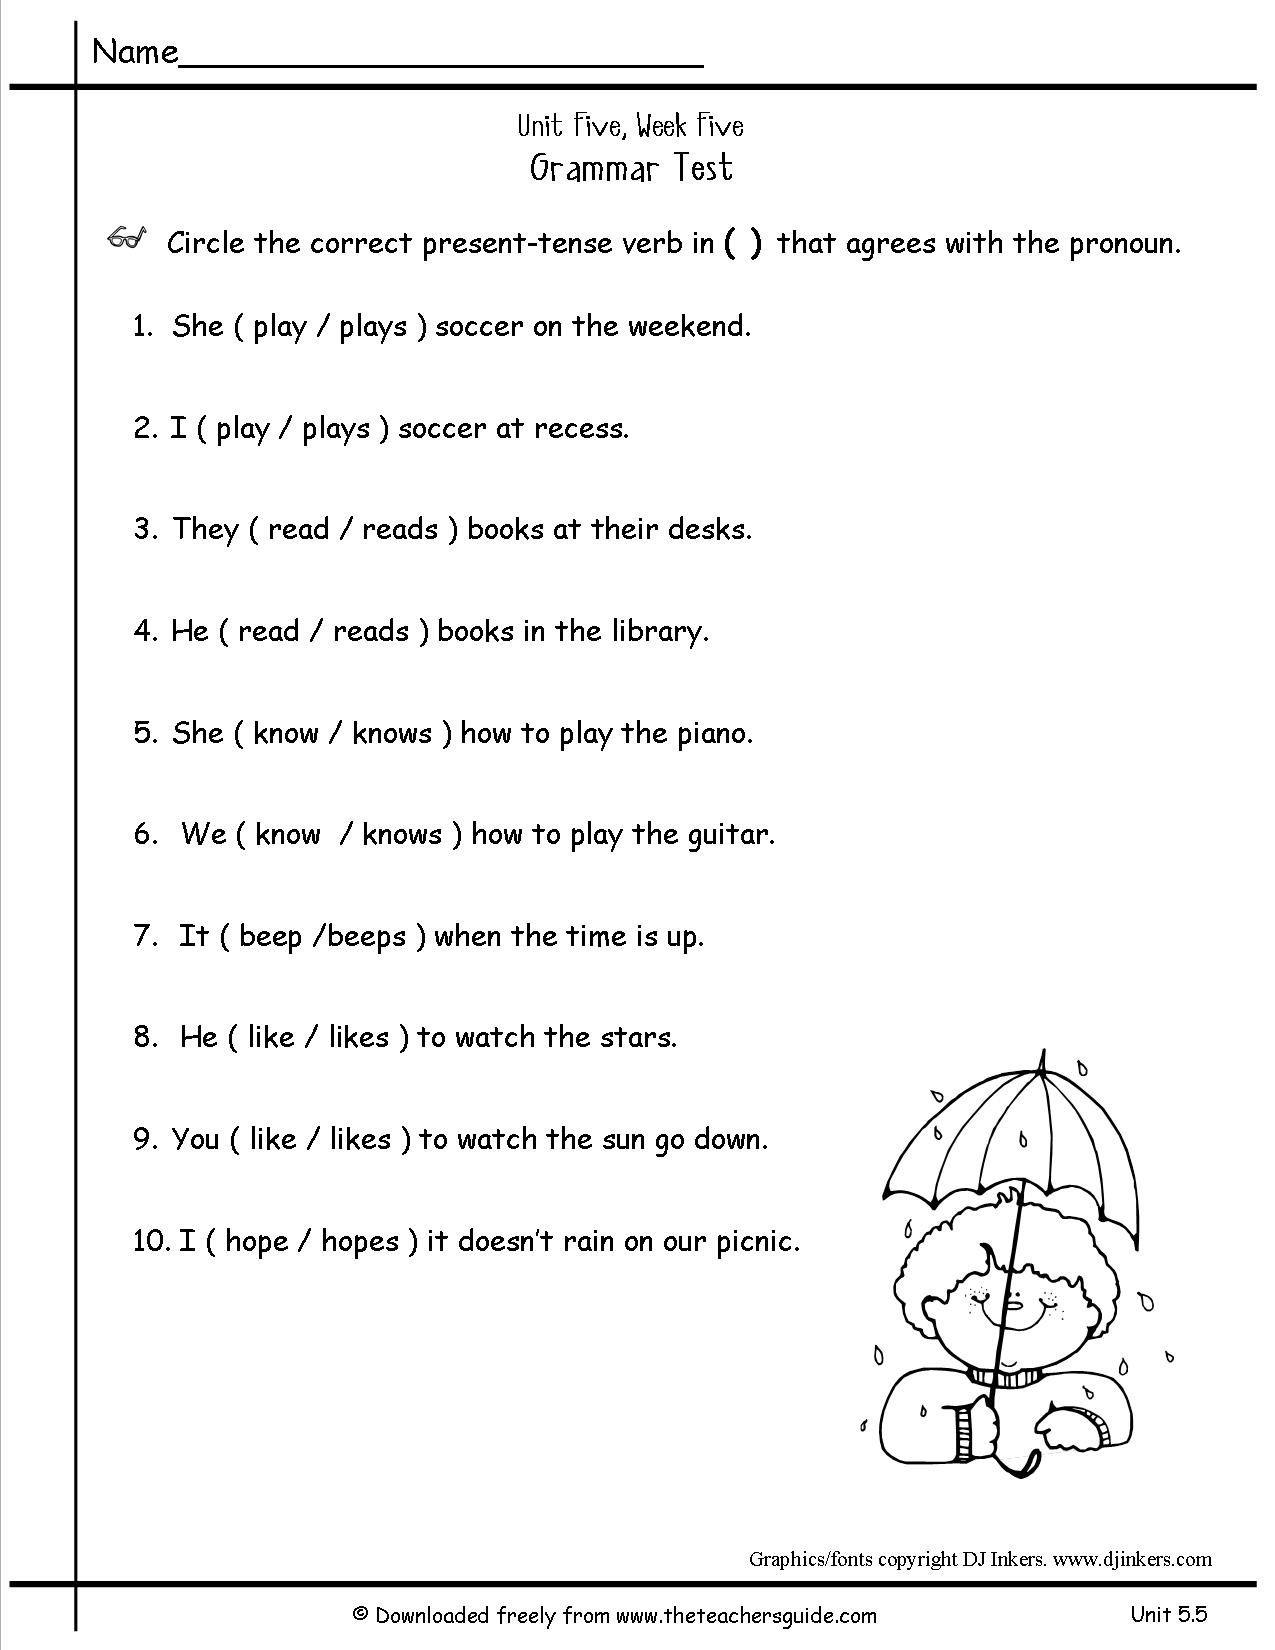 7th Grade History Worksheets 5 Free Grammar Worksheets Second Grade 2 Verbs Past Tense